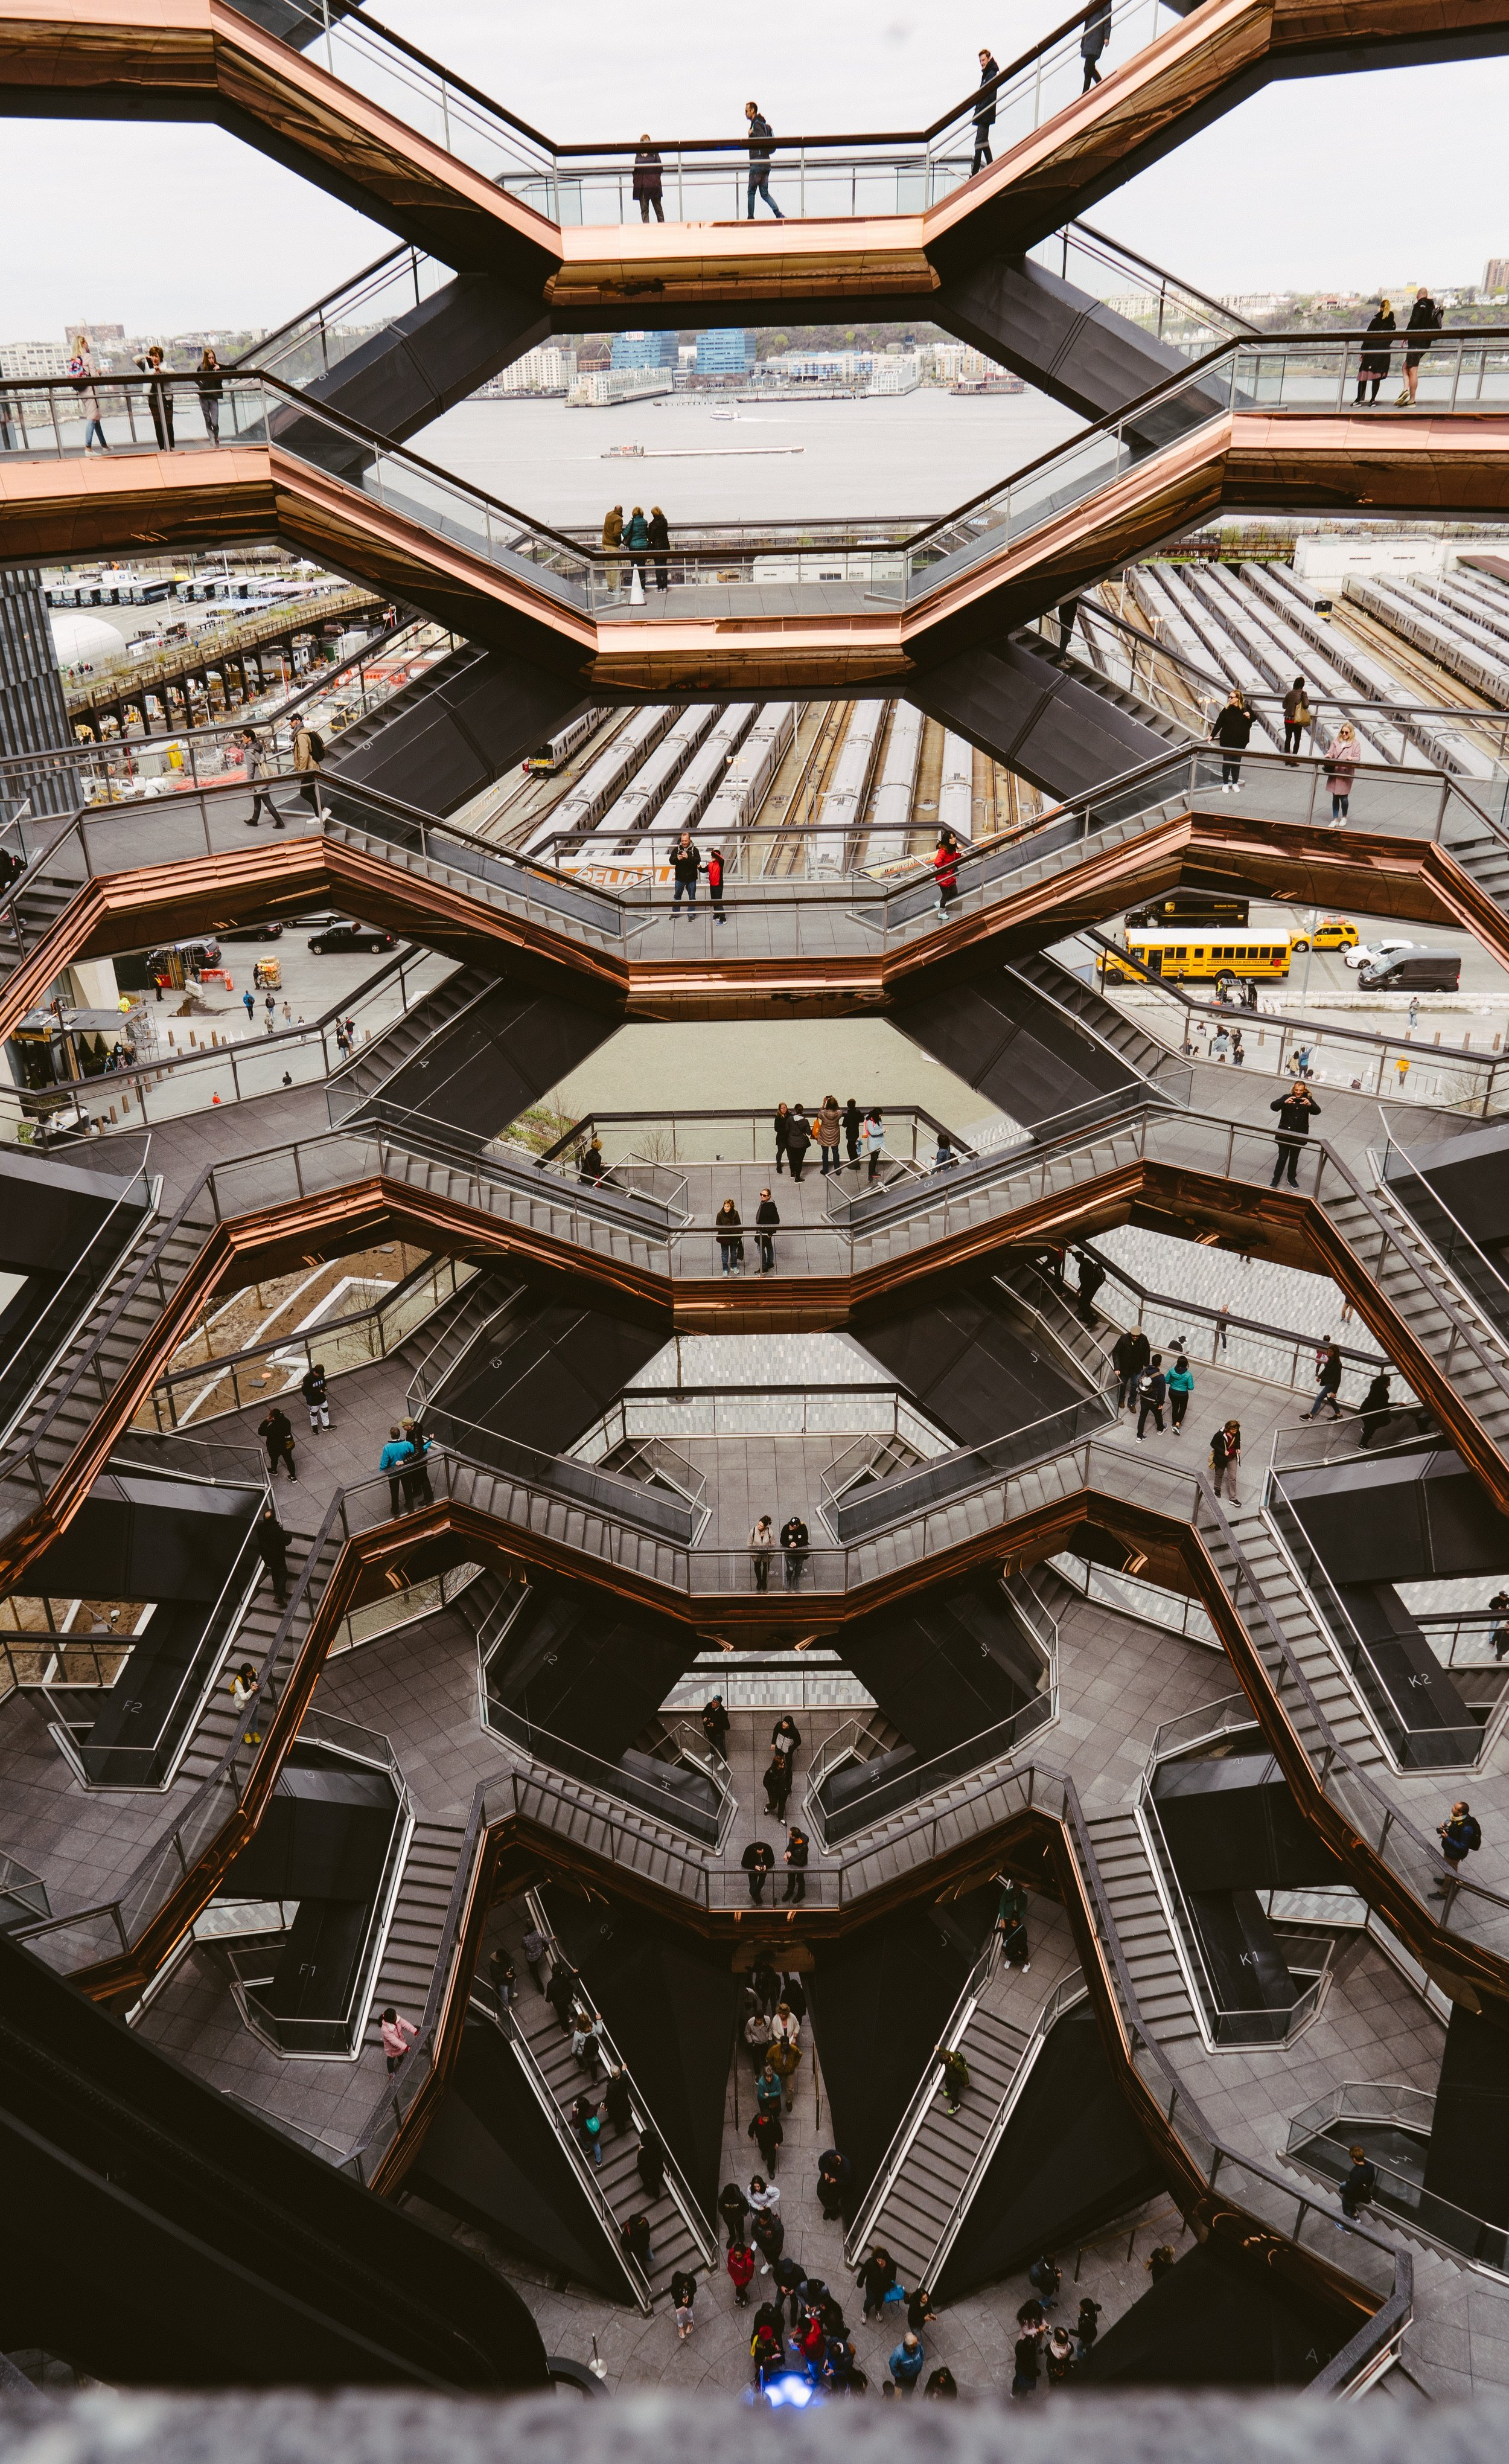 BCG's new office spans five floors at 10 Hudson Yards, Manhattan's newest community and home to the Vessel. Photo by  MJ Tangonan  on  Unsplash